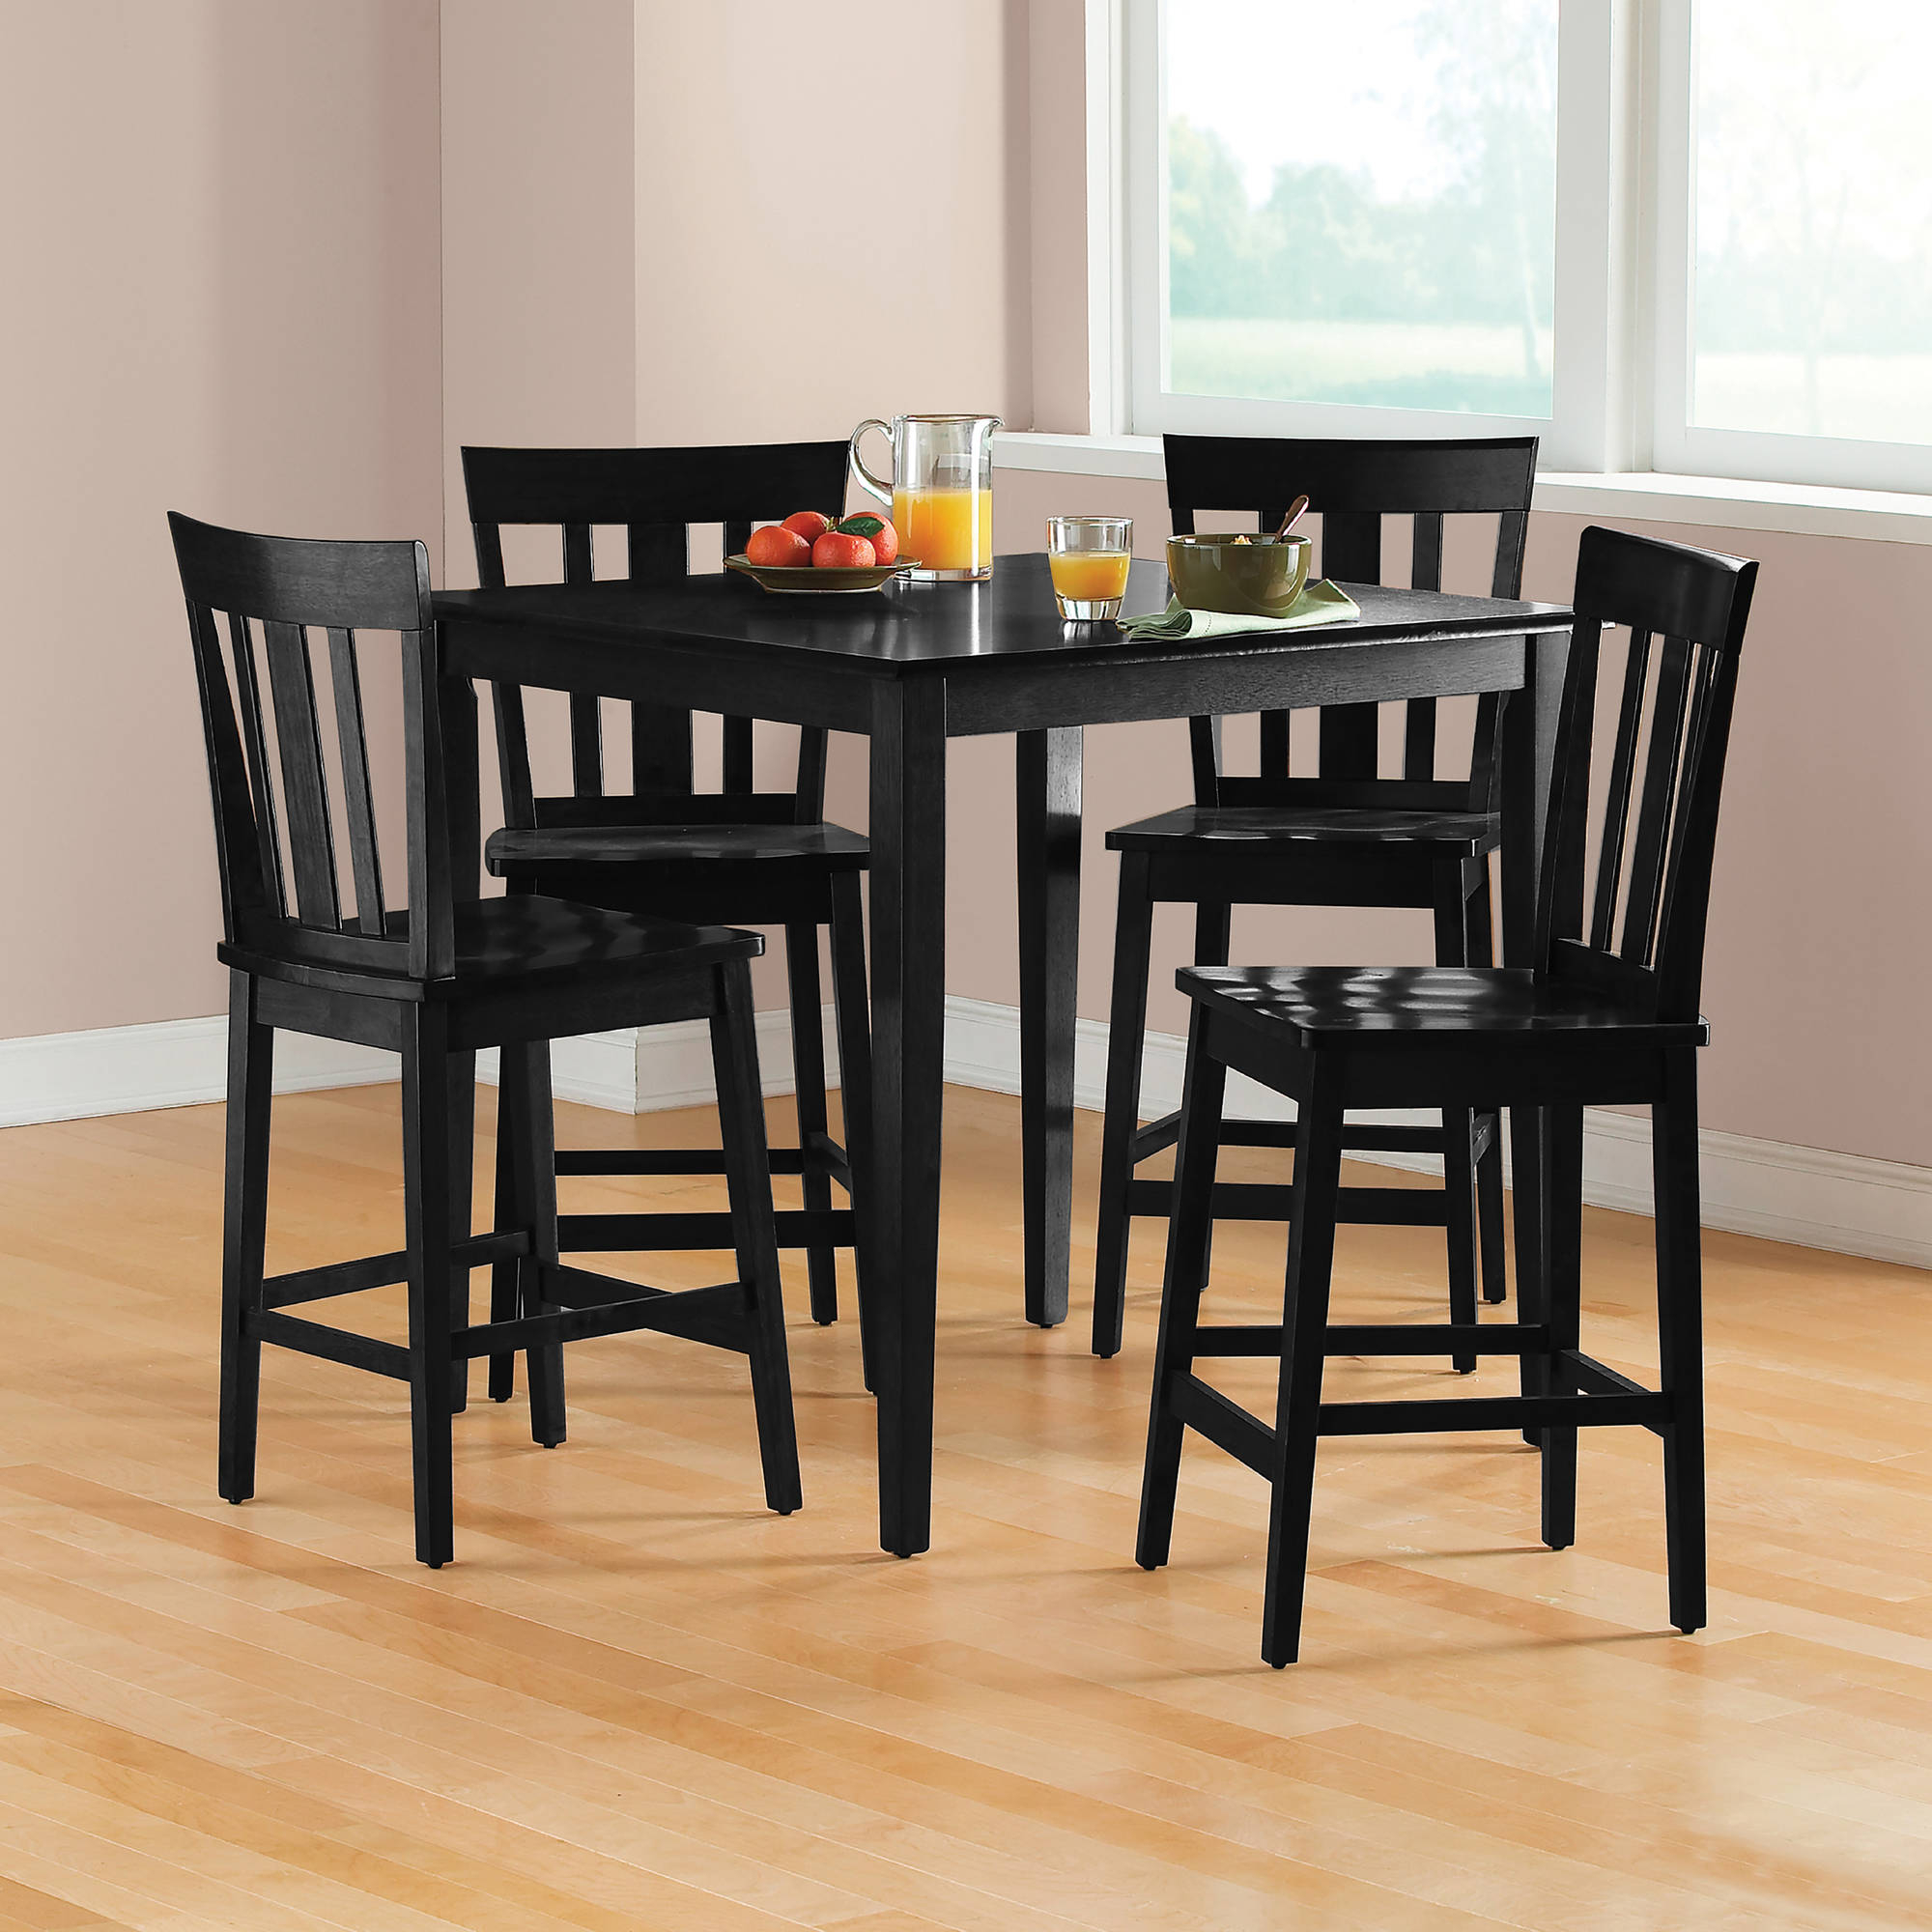 2019 Sheetz 3 Piece Counter Height Dining Sets In Mainstays 5 Piece Mission Counter Height Dining Set – Walmart (View 8 of 25)